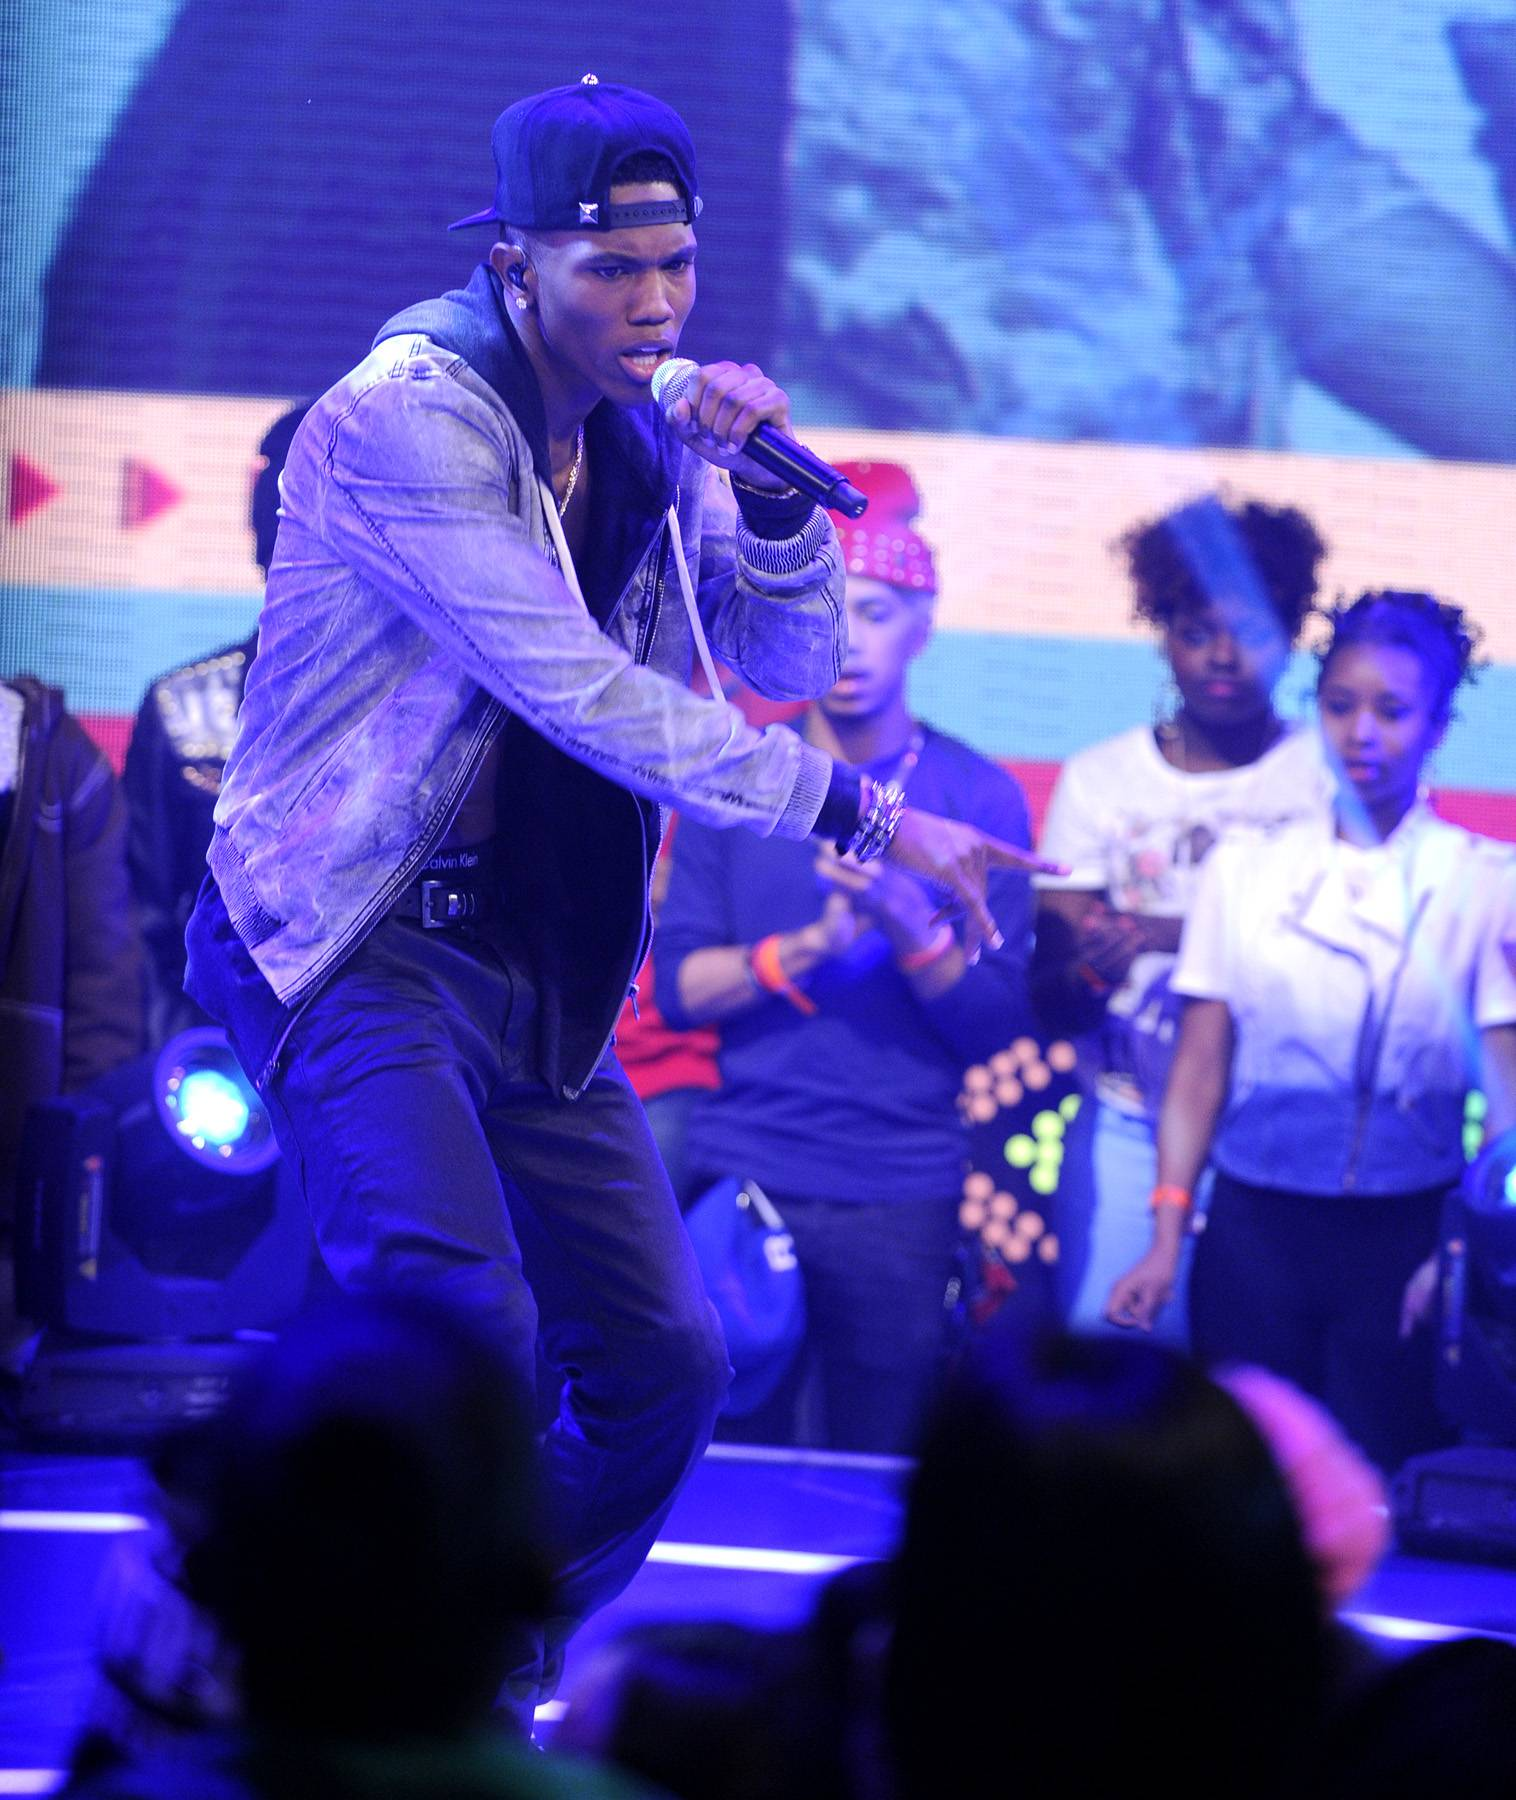 Ready For Action - 106 & Park, March 11, 2013. (Photo: John Ricard / BET)